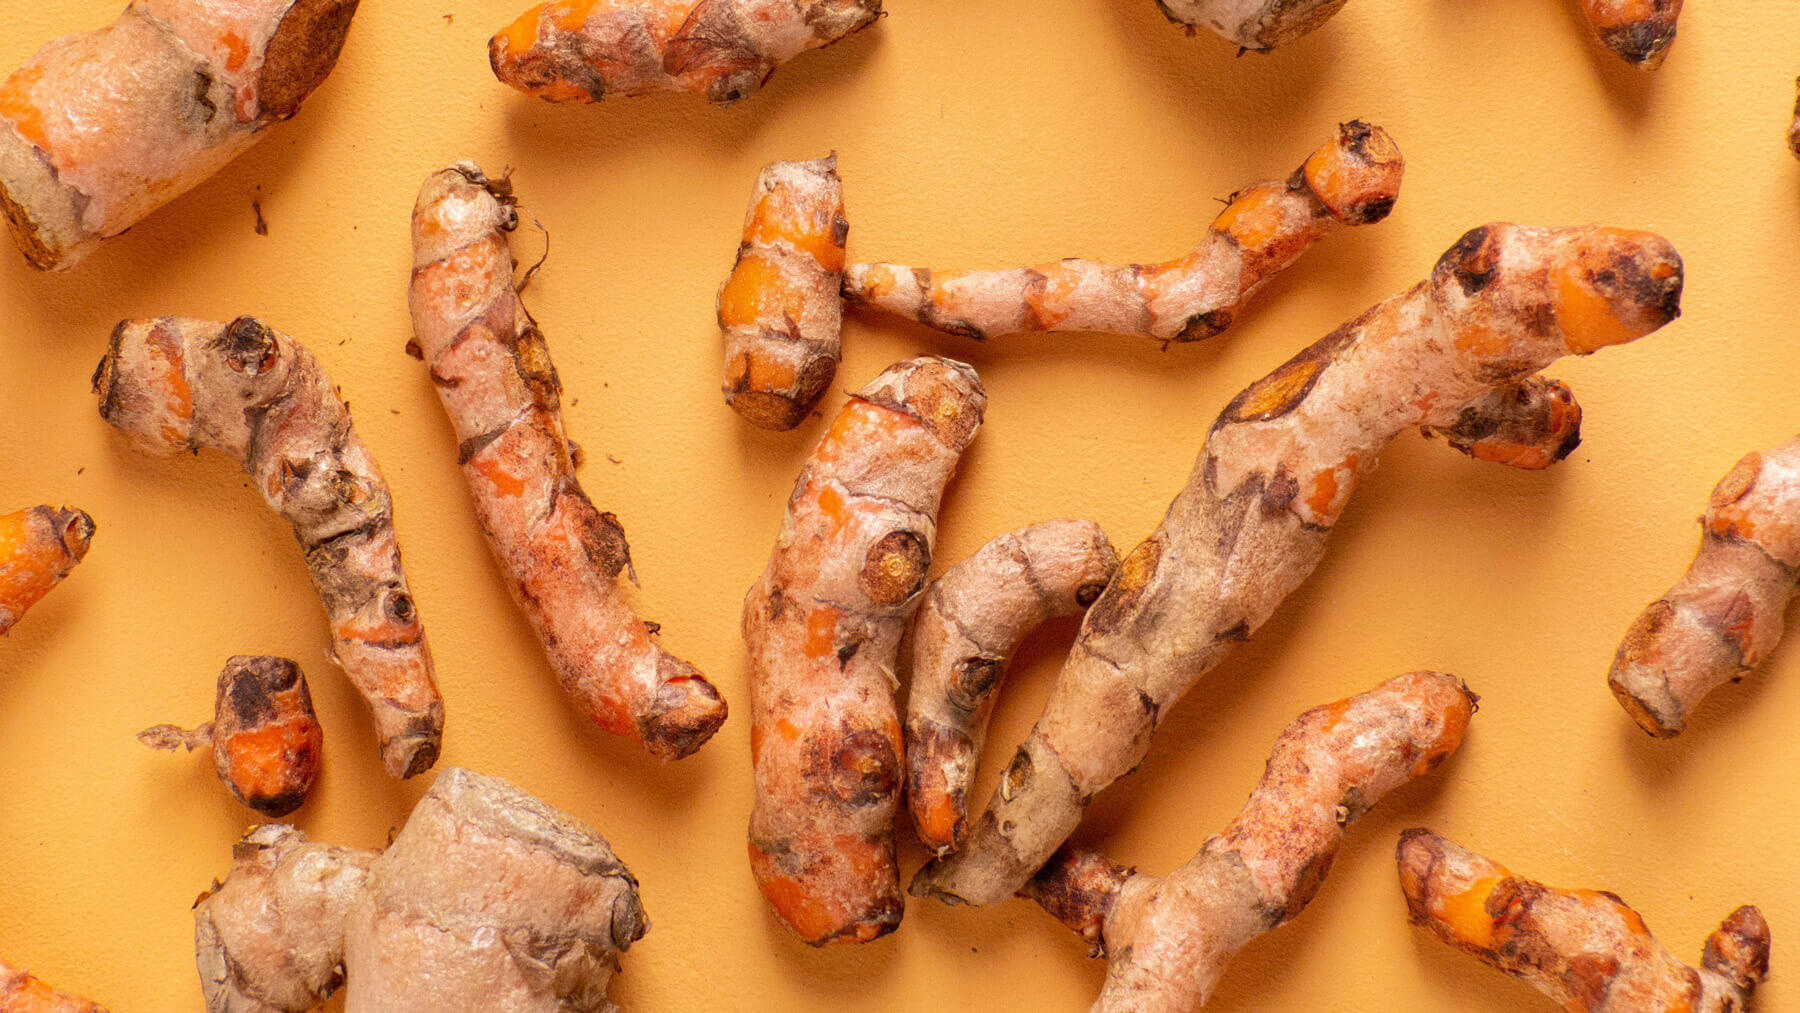 Turmeric for treating inflammation - Goldleaf